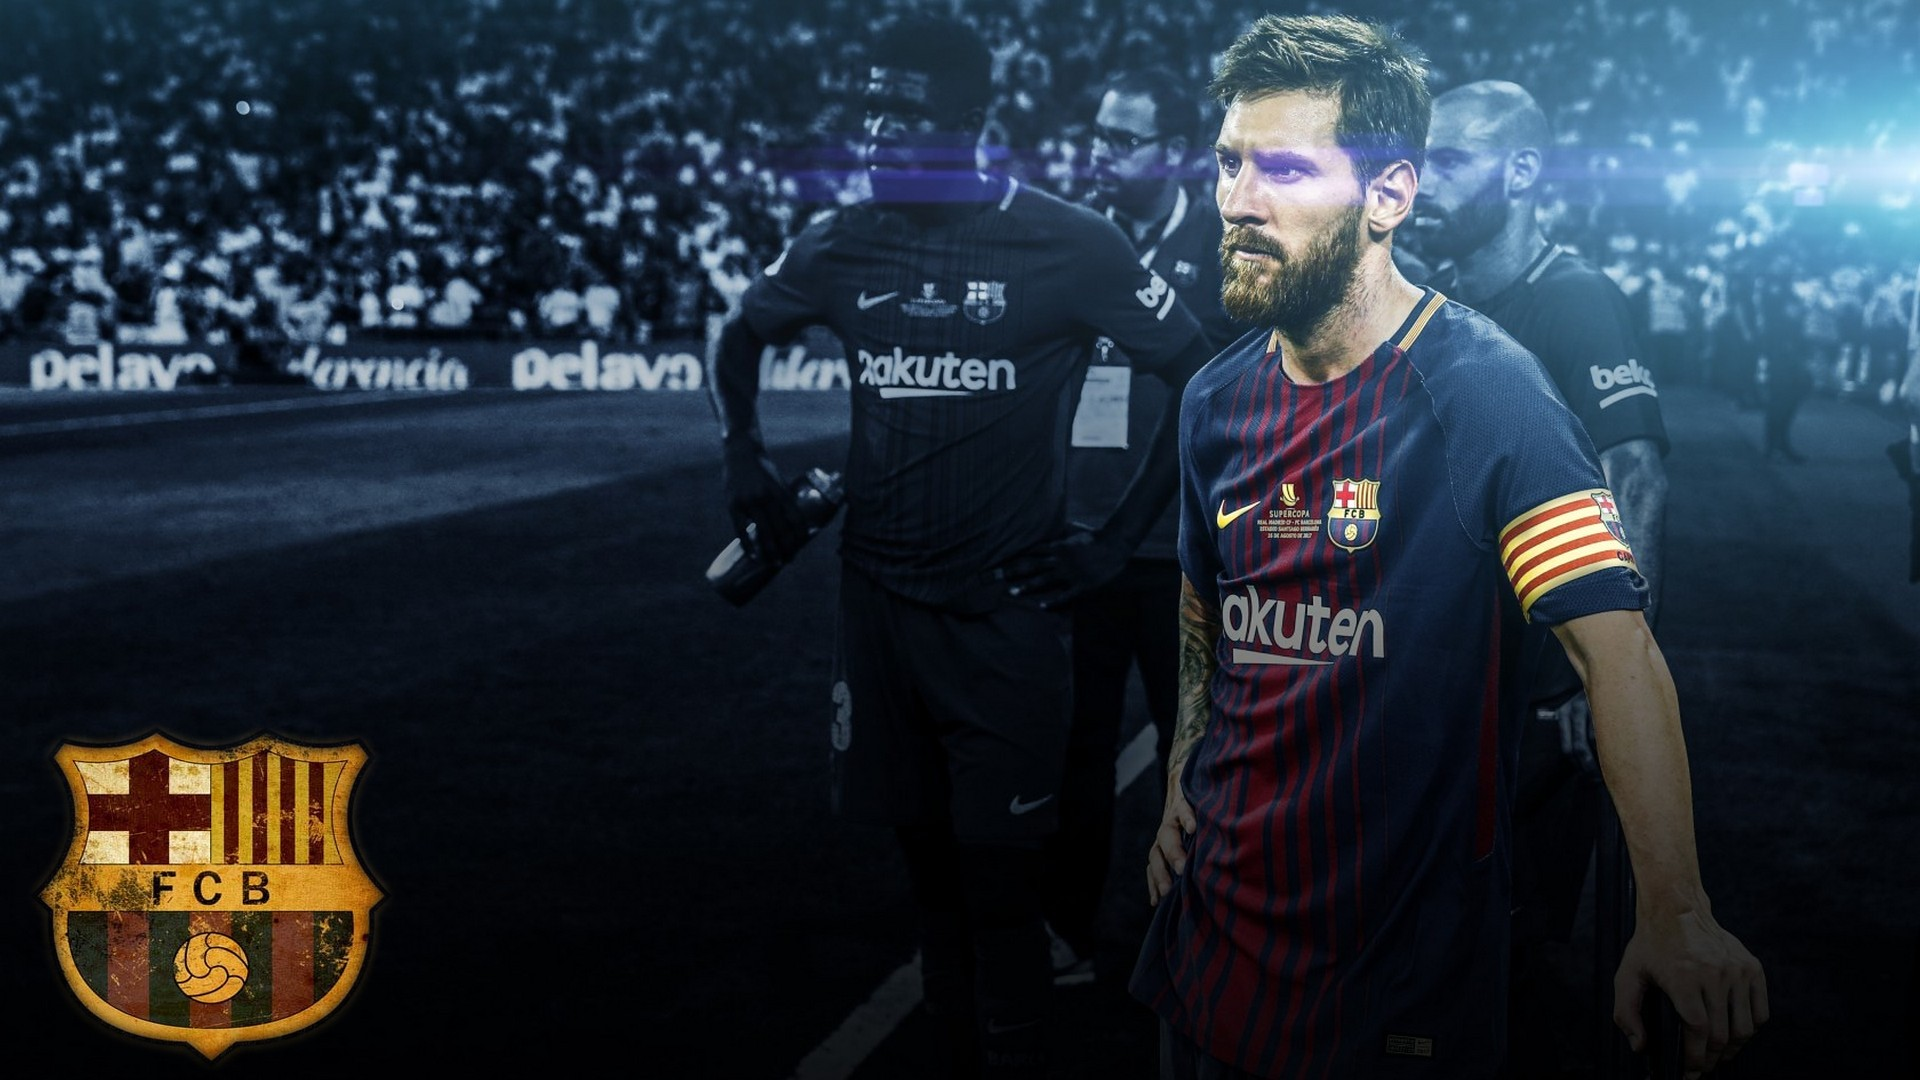 Hd Wallpaper Dimensions Hd Lionel Messi Backgrounds 2019 Football Wallpaper